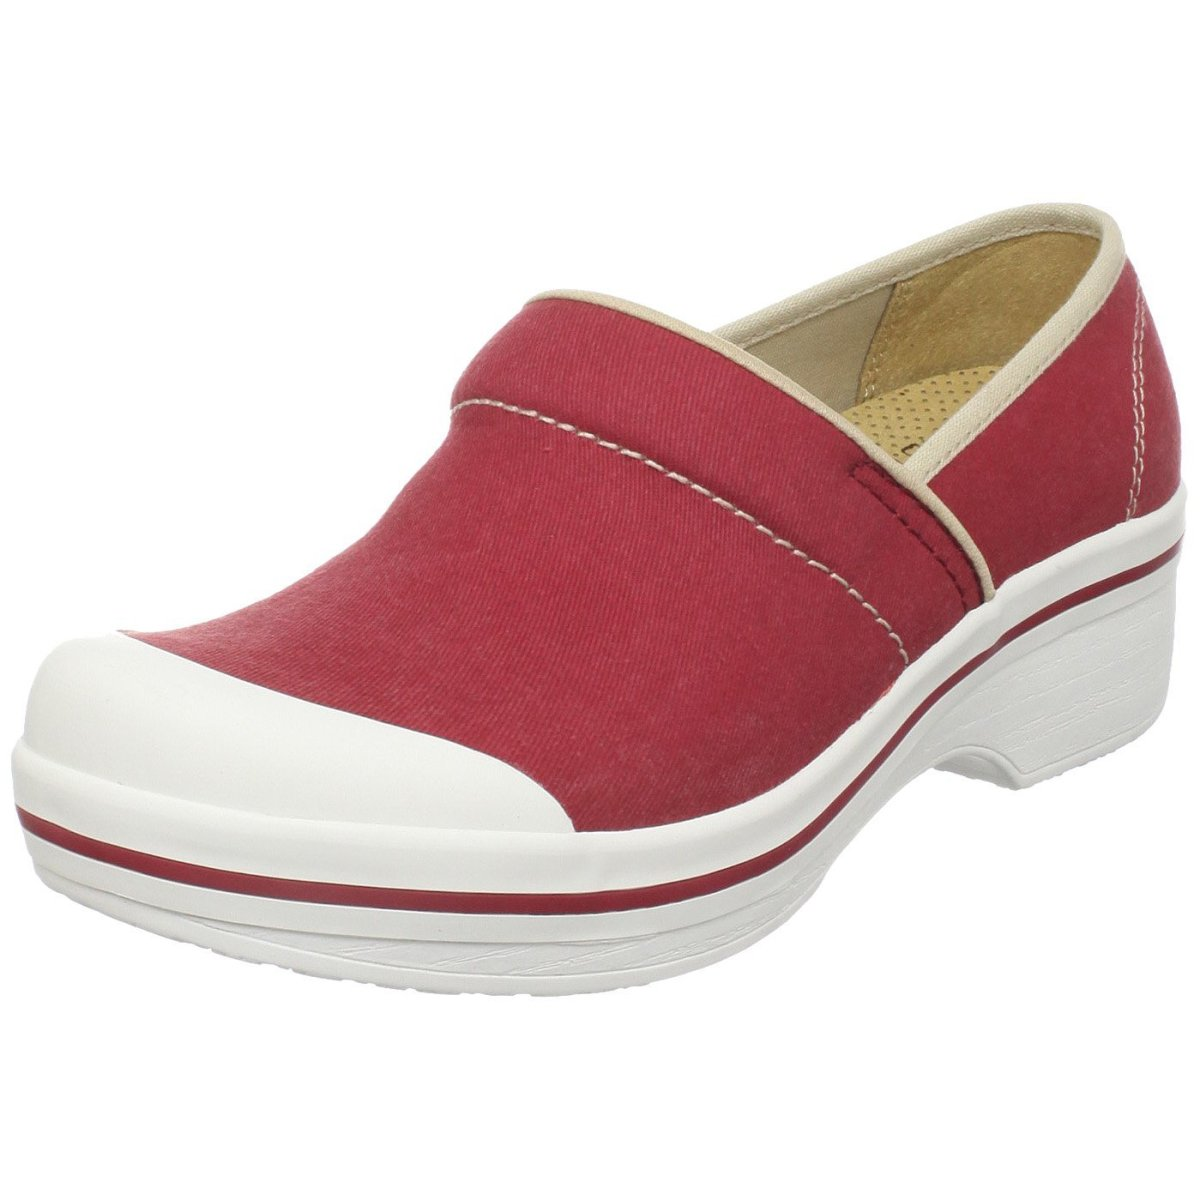 Among the best shoes for nurses are Dansko nurse shoes.